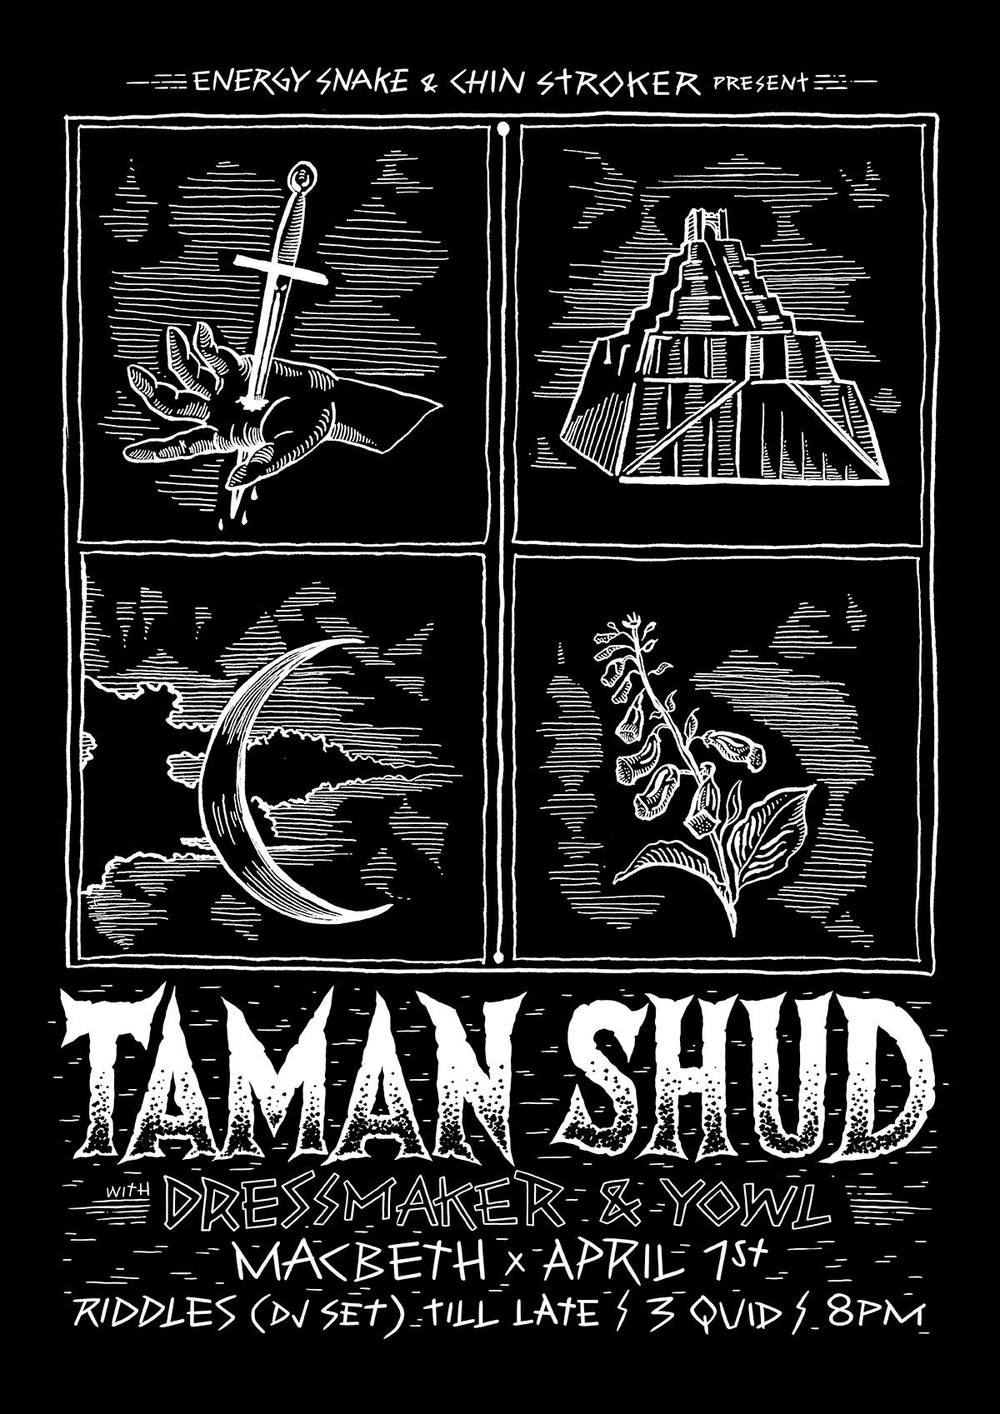 "The Energy Snake picks 3 up and coming bands from the UK underground. BRUTAL. Dark and twisted vibes for a midweek meltdown! Plus Riddles (DJ Set) on the decks. x Join us at The Macbeth for: TAMAN SHUD https://www.facebook.com/TAMANSHUD ""Blackened psychedelic motorcycle punk from HELL"" - Taman Shud ""In sonic terms, it's a compellingly dense take on garage punk and 80s post-hardcore, with songs alternating between breakneck rockers and psychedelic death marches. .. A sound defined by a twin bass assault, needling Eastern-tinged guitar, simple but hypnotic Farfisa-esque organ, and invocatory, massively-reverbed vocals"" - The Quietus dressmaker https://www.facebook.com/dressmakerlondon ""one of the loudest, noisiest and most intense live bands around"" - VICE ""fuzz that scratches so deep it would make the Jesus & Mary Chain whimper"" - NME YOWL https://www.facebook.com/yowlmusic 'The frontman fumbles slovenly about the mic like a lanky Mark E Smith. The vocal delivery appears to be in a constant flux between mock baritone and rabid seething "" - THE 405"